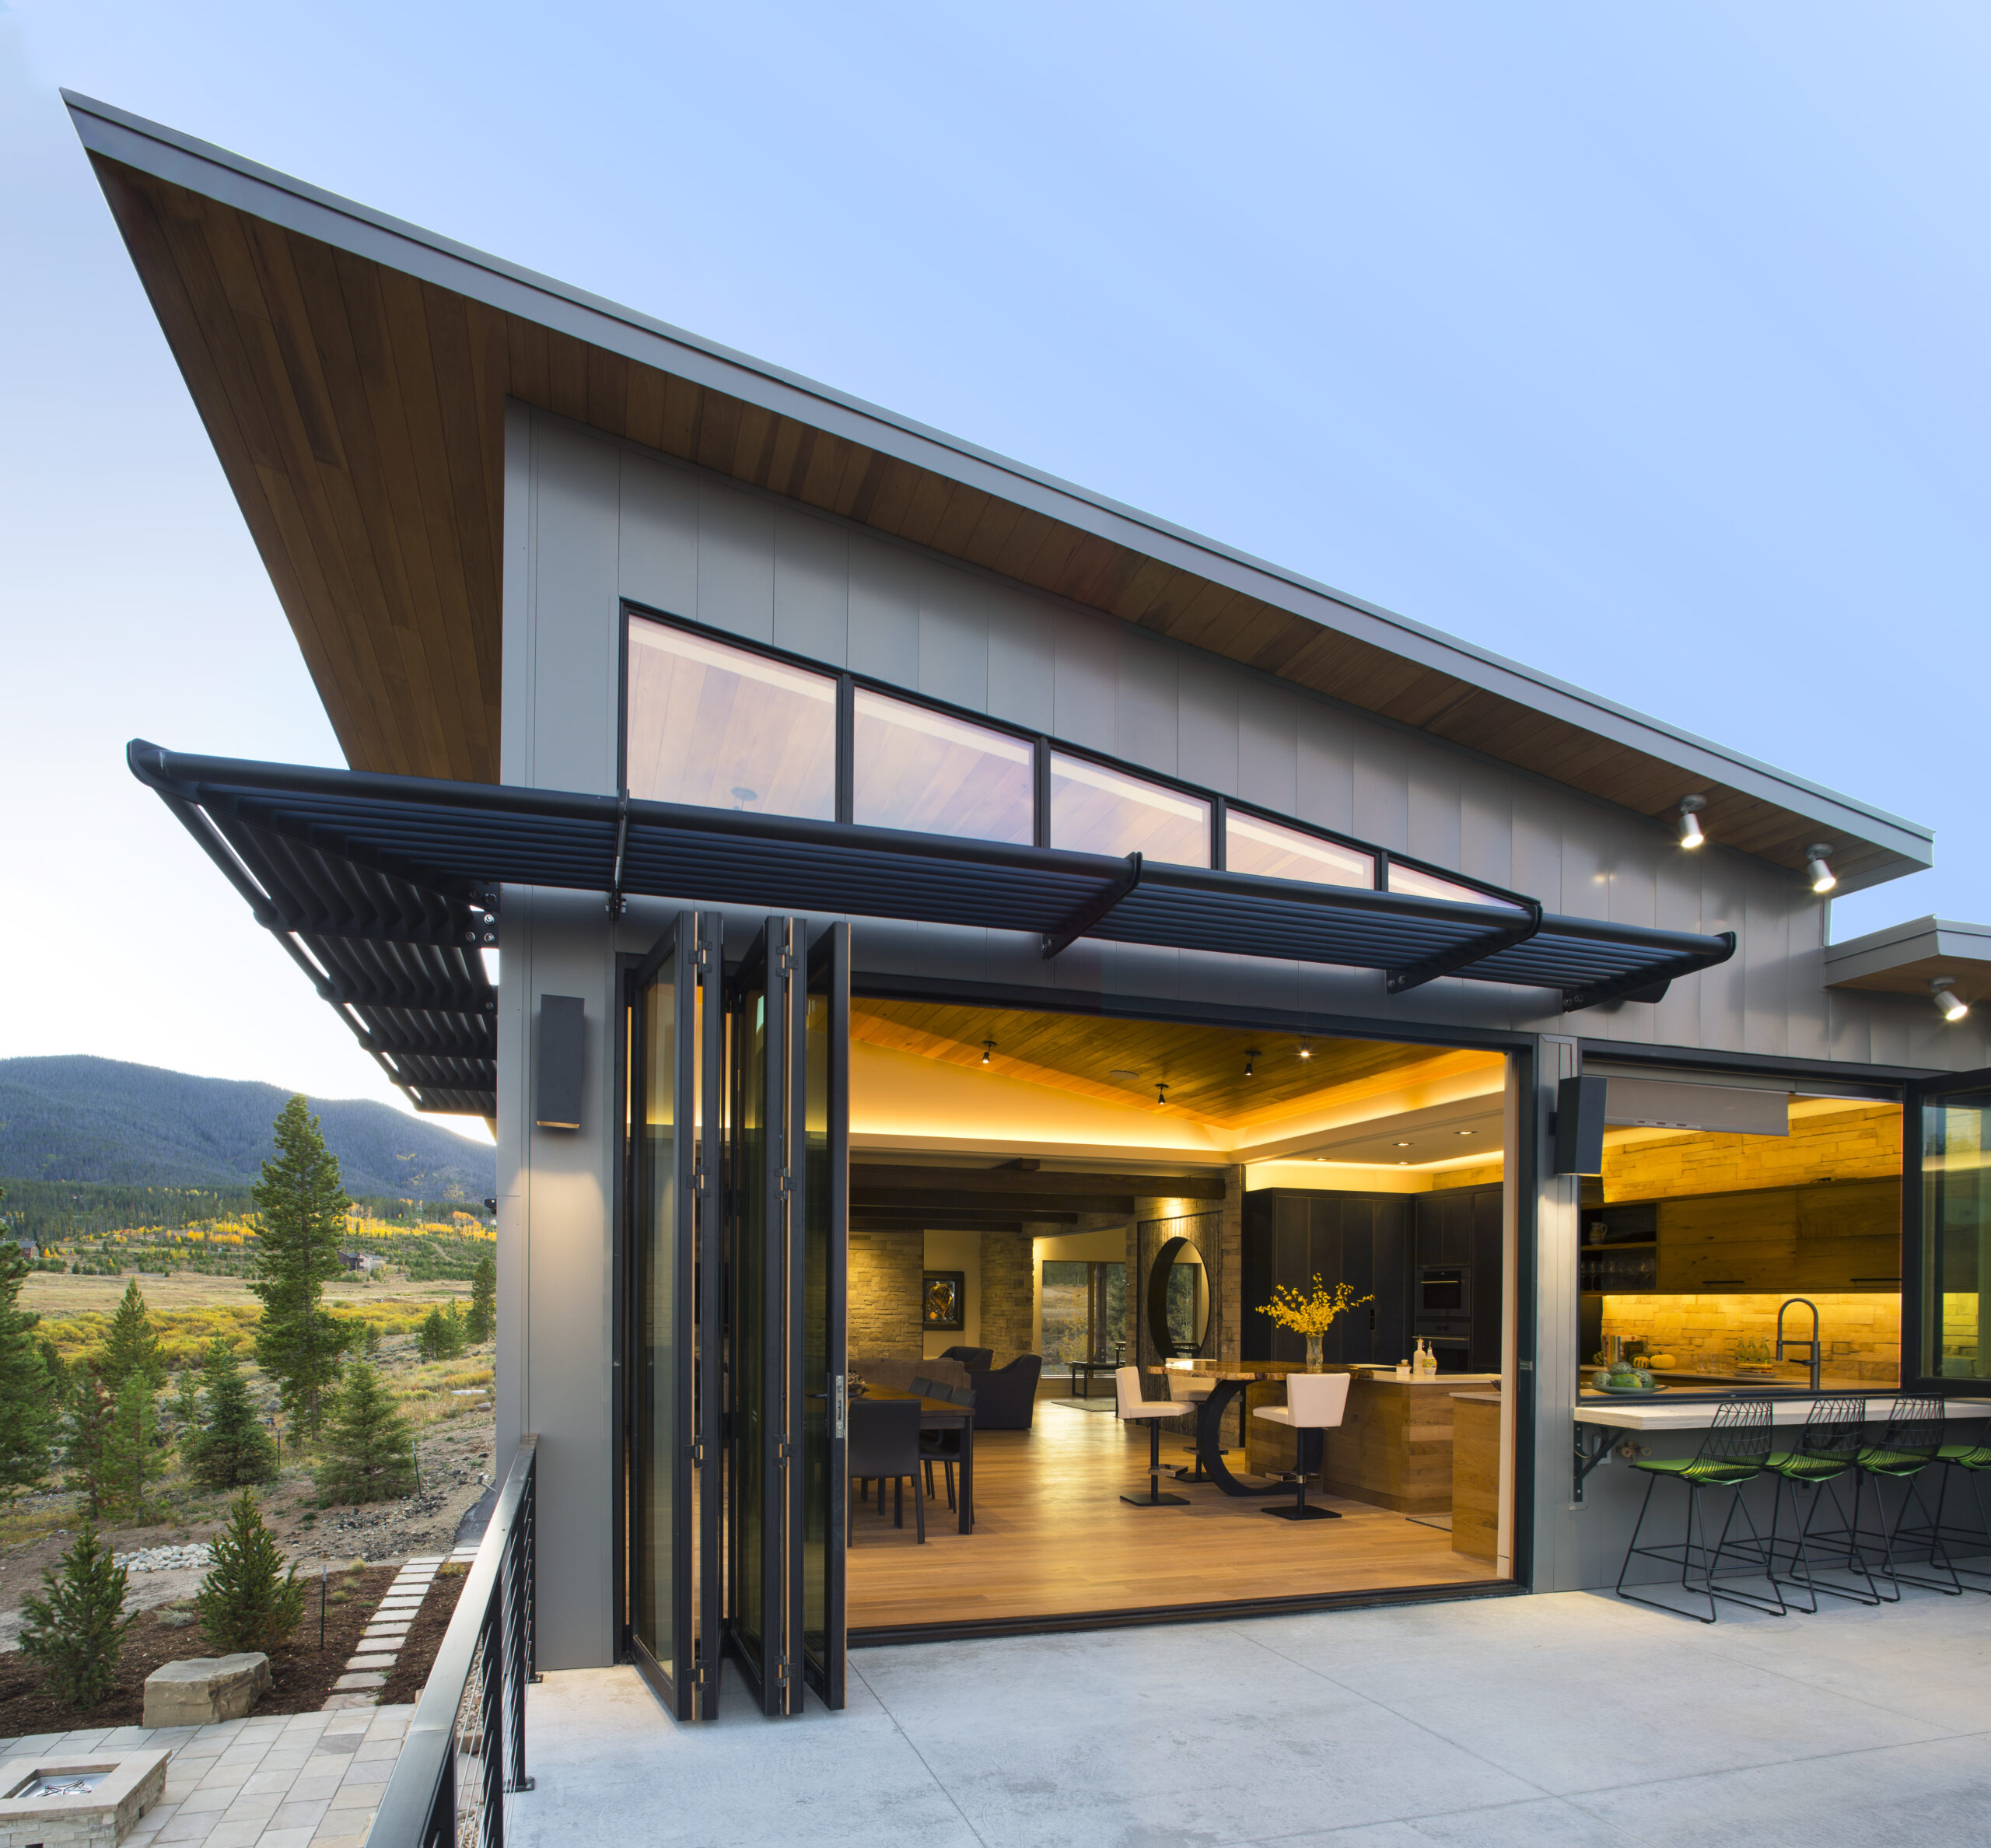 Ewers Architecture patio accessed through folding glass walls